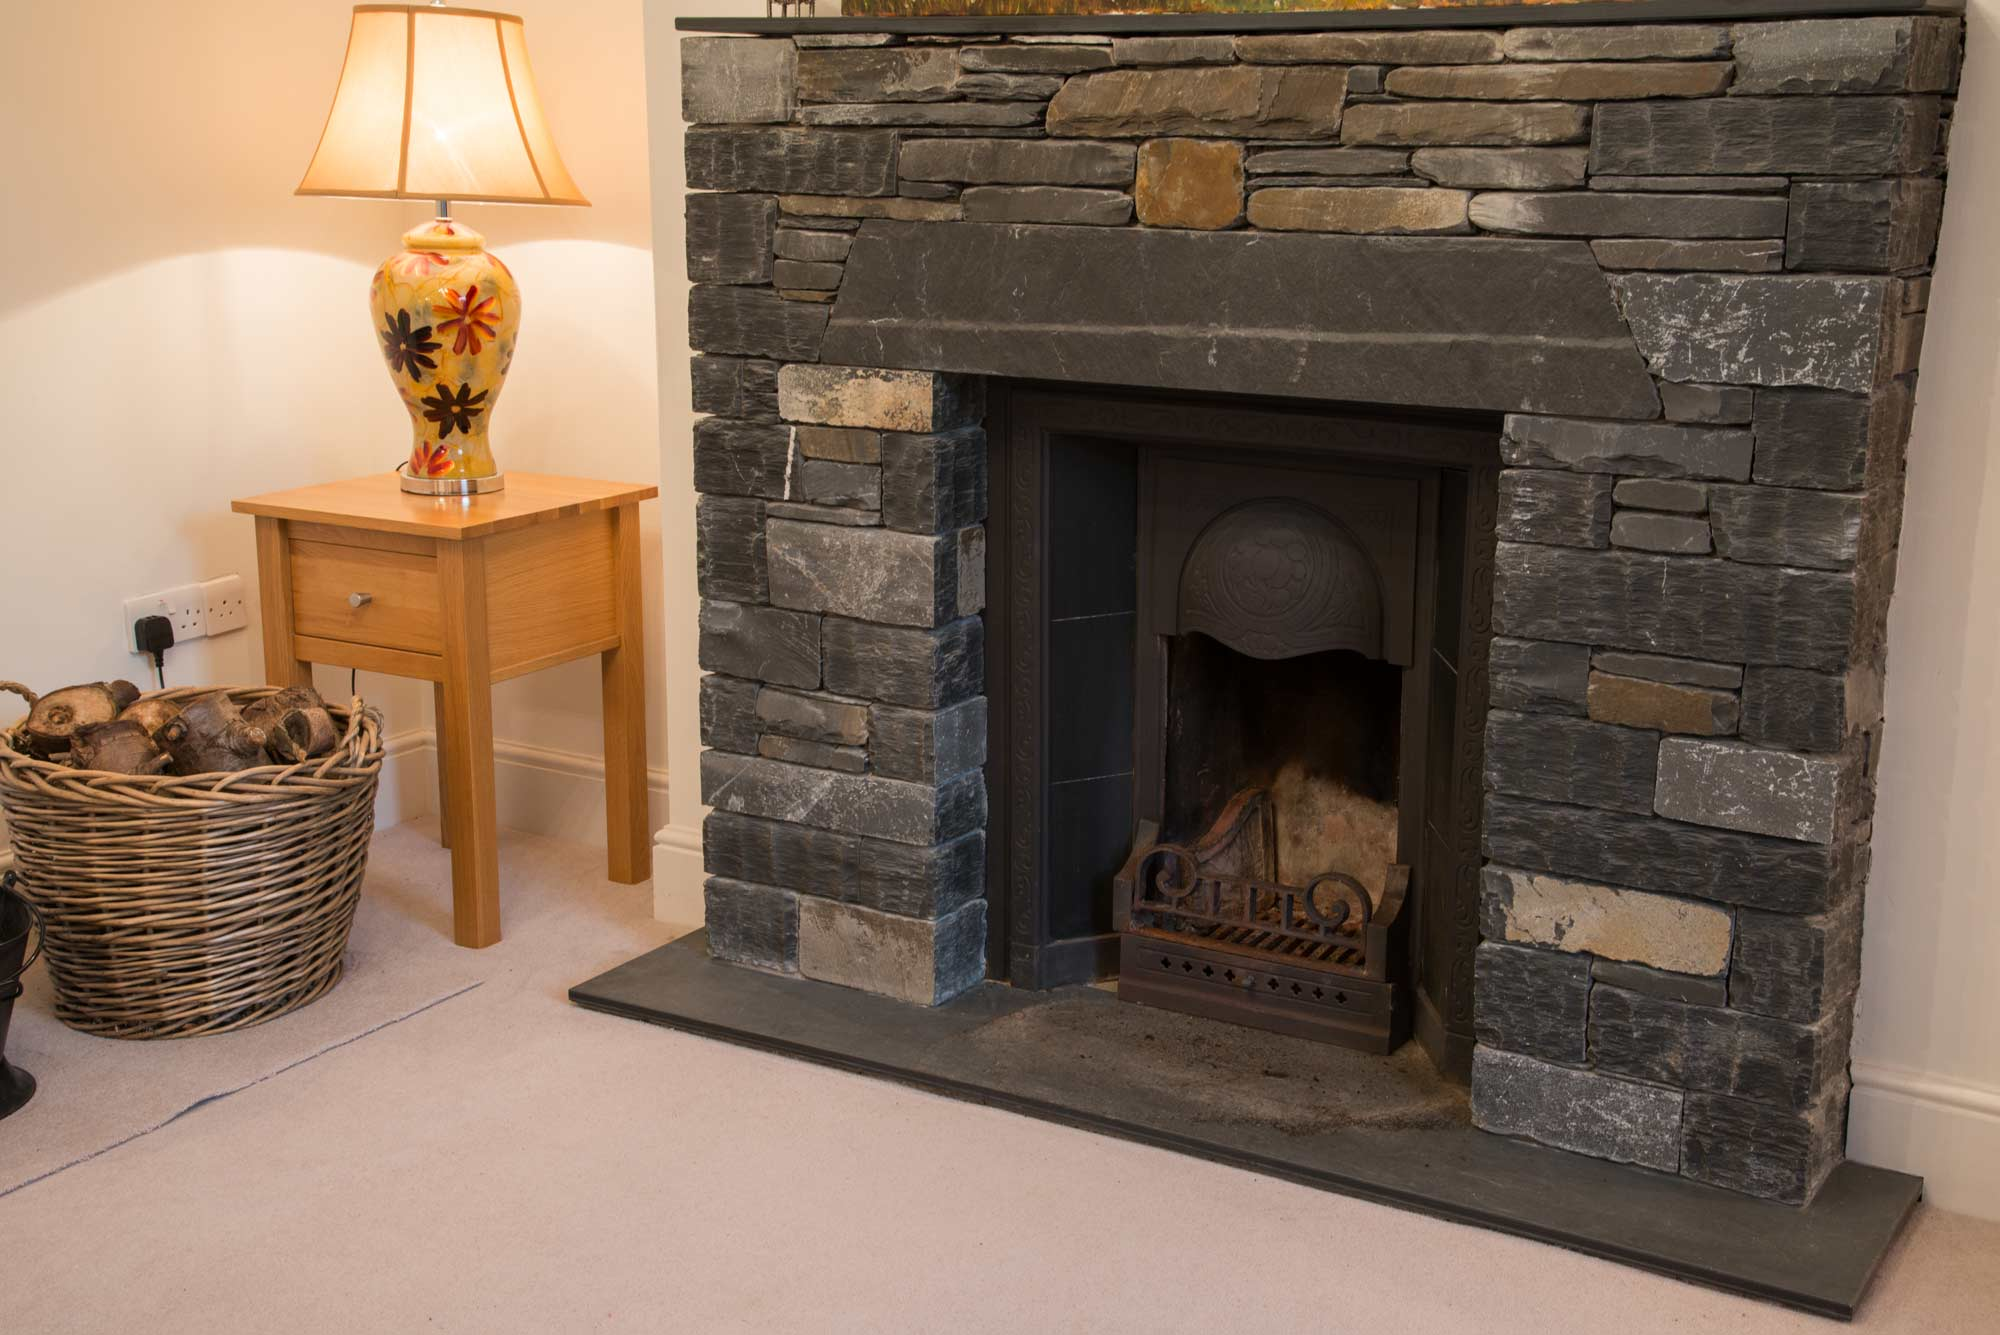 Bespoke Fireplaces For Stoves Or Open Fires By Firehouse